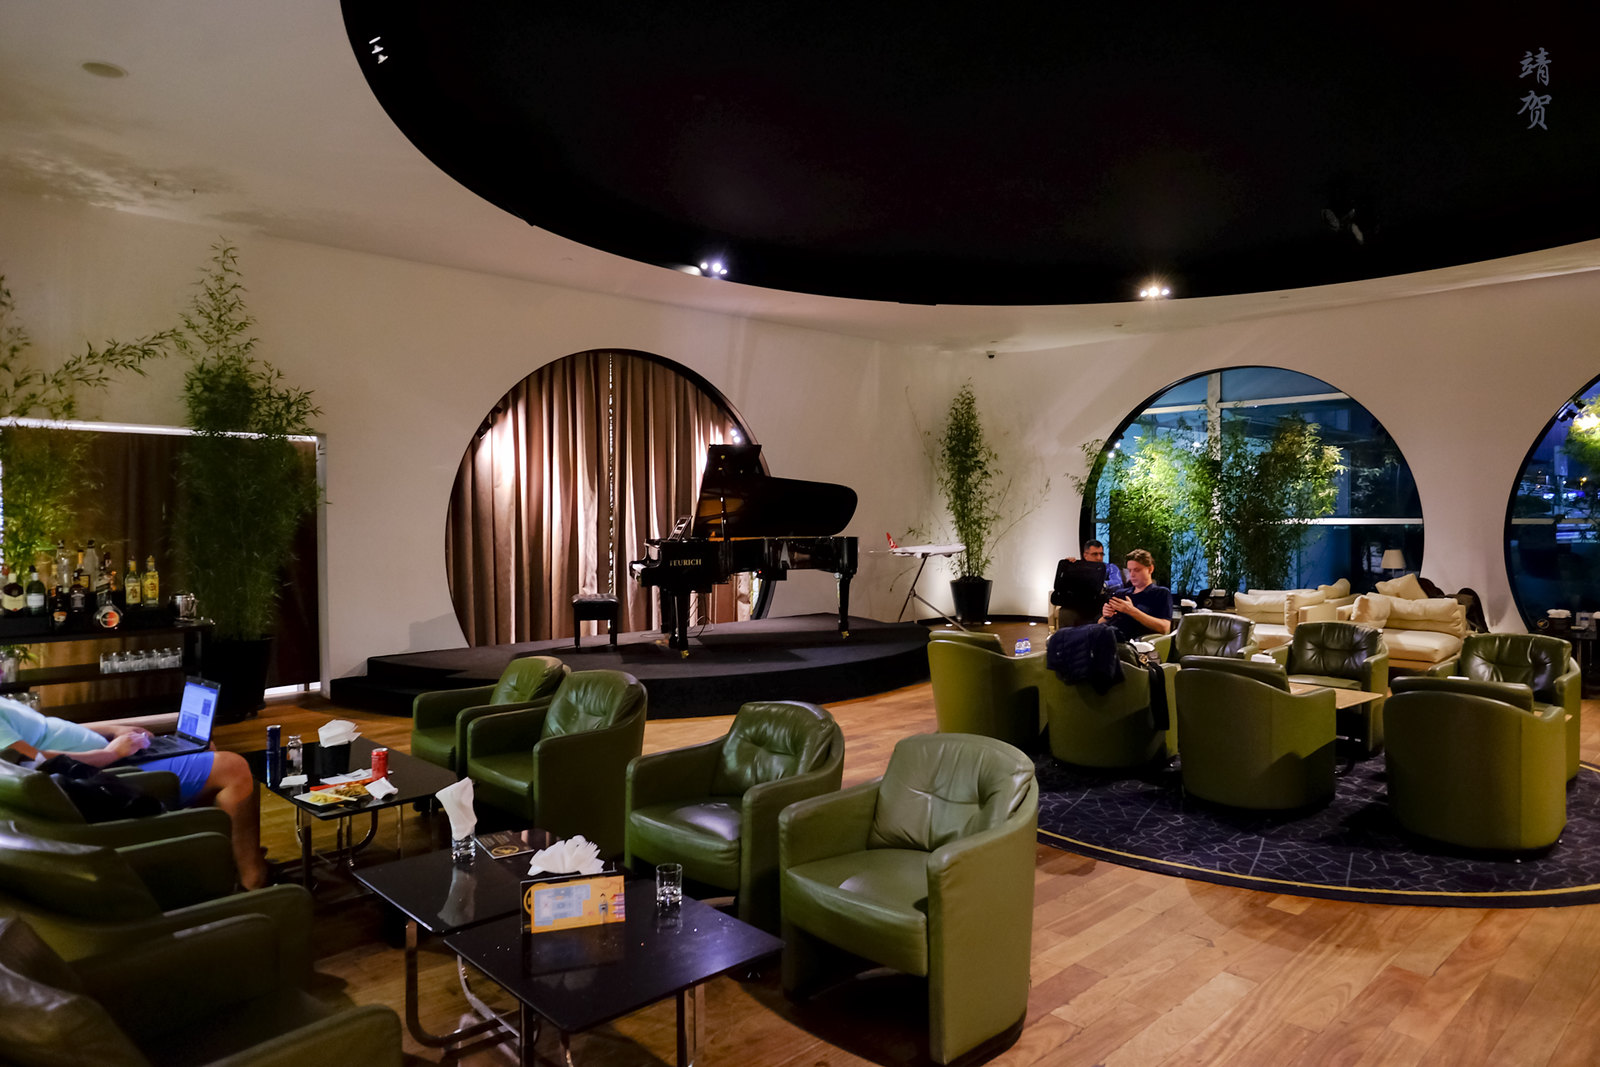 Piano bar in the lounge